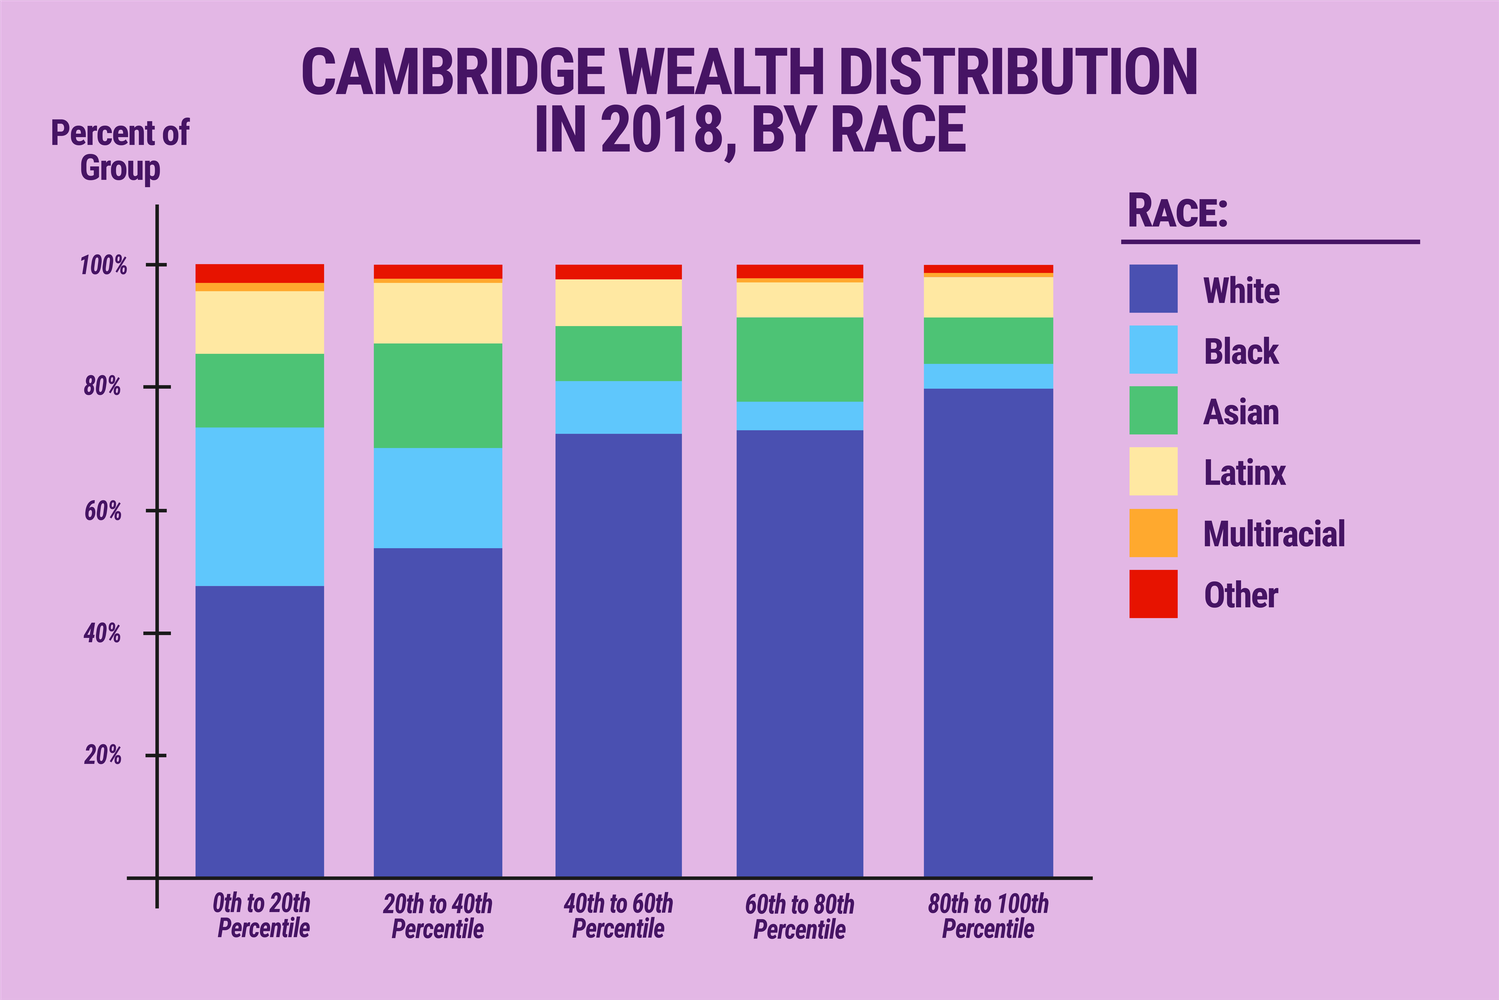 A report from the Cambridge Community Foundation found that despite rapid economic growth, Cambridge suffers from stark economic inequality by race, particularly among Black households.